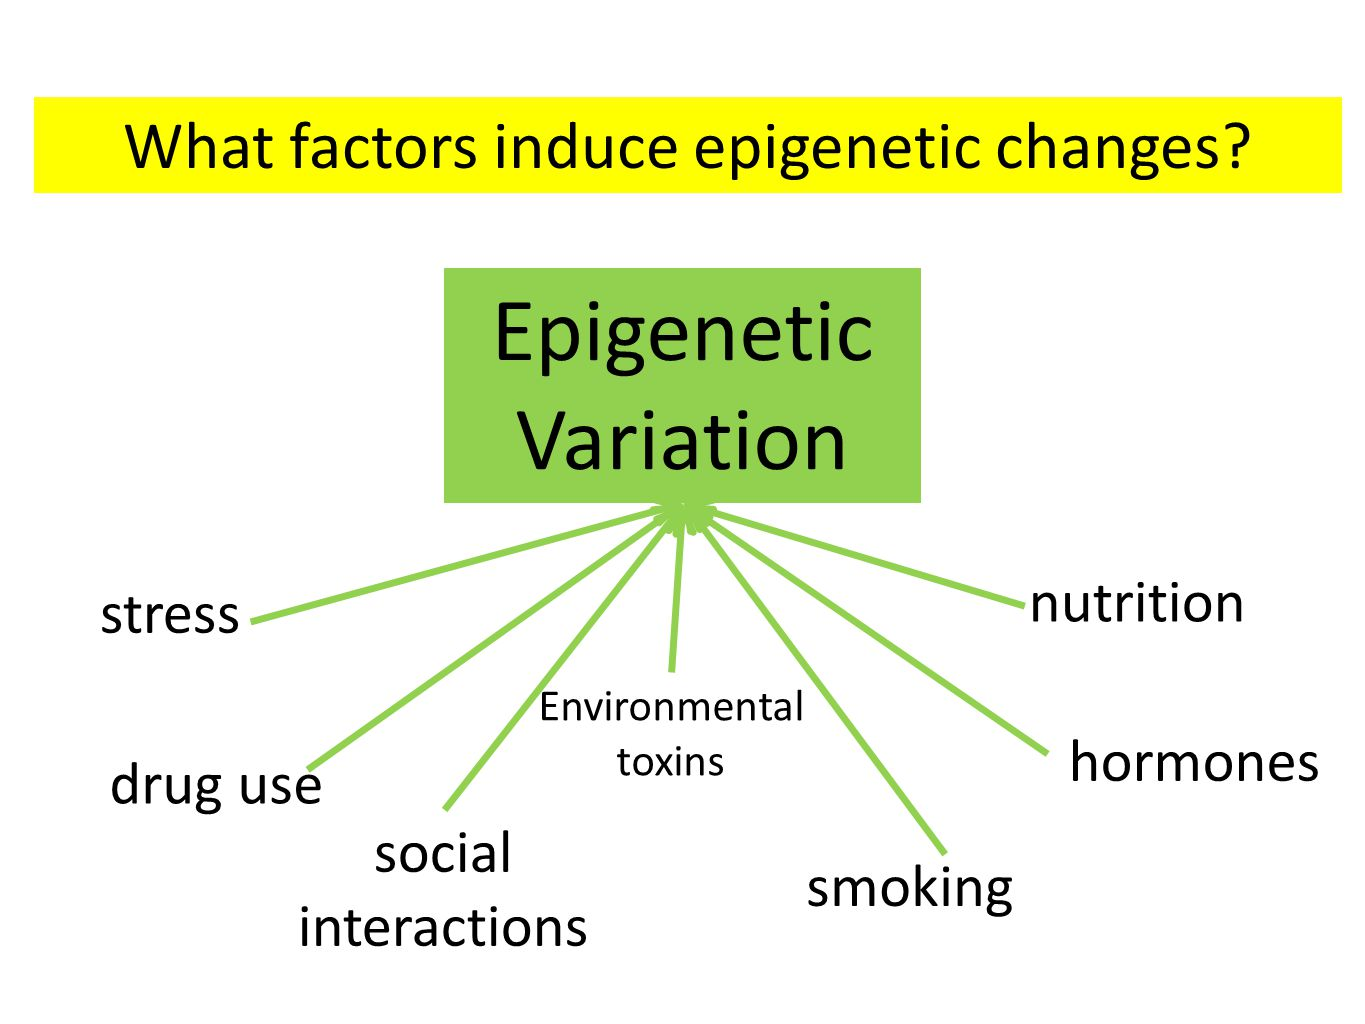 Epigenetic Variation nutrition stress drug use social interactions Environmental toxins hormones smoking What factors induce epigenetic changes